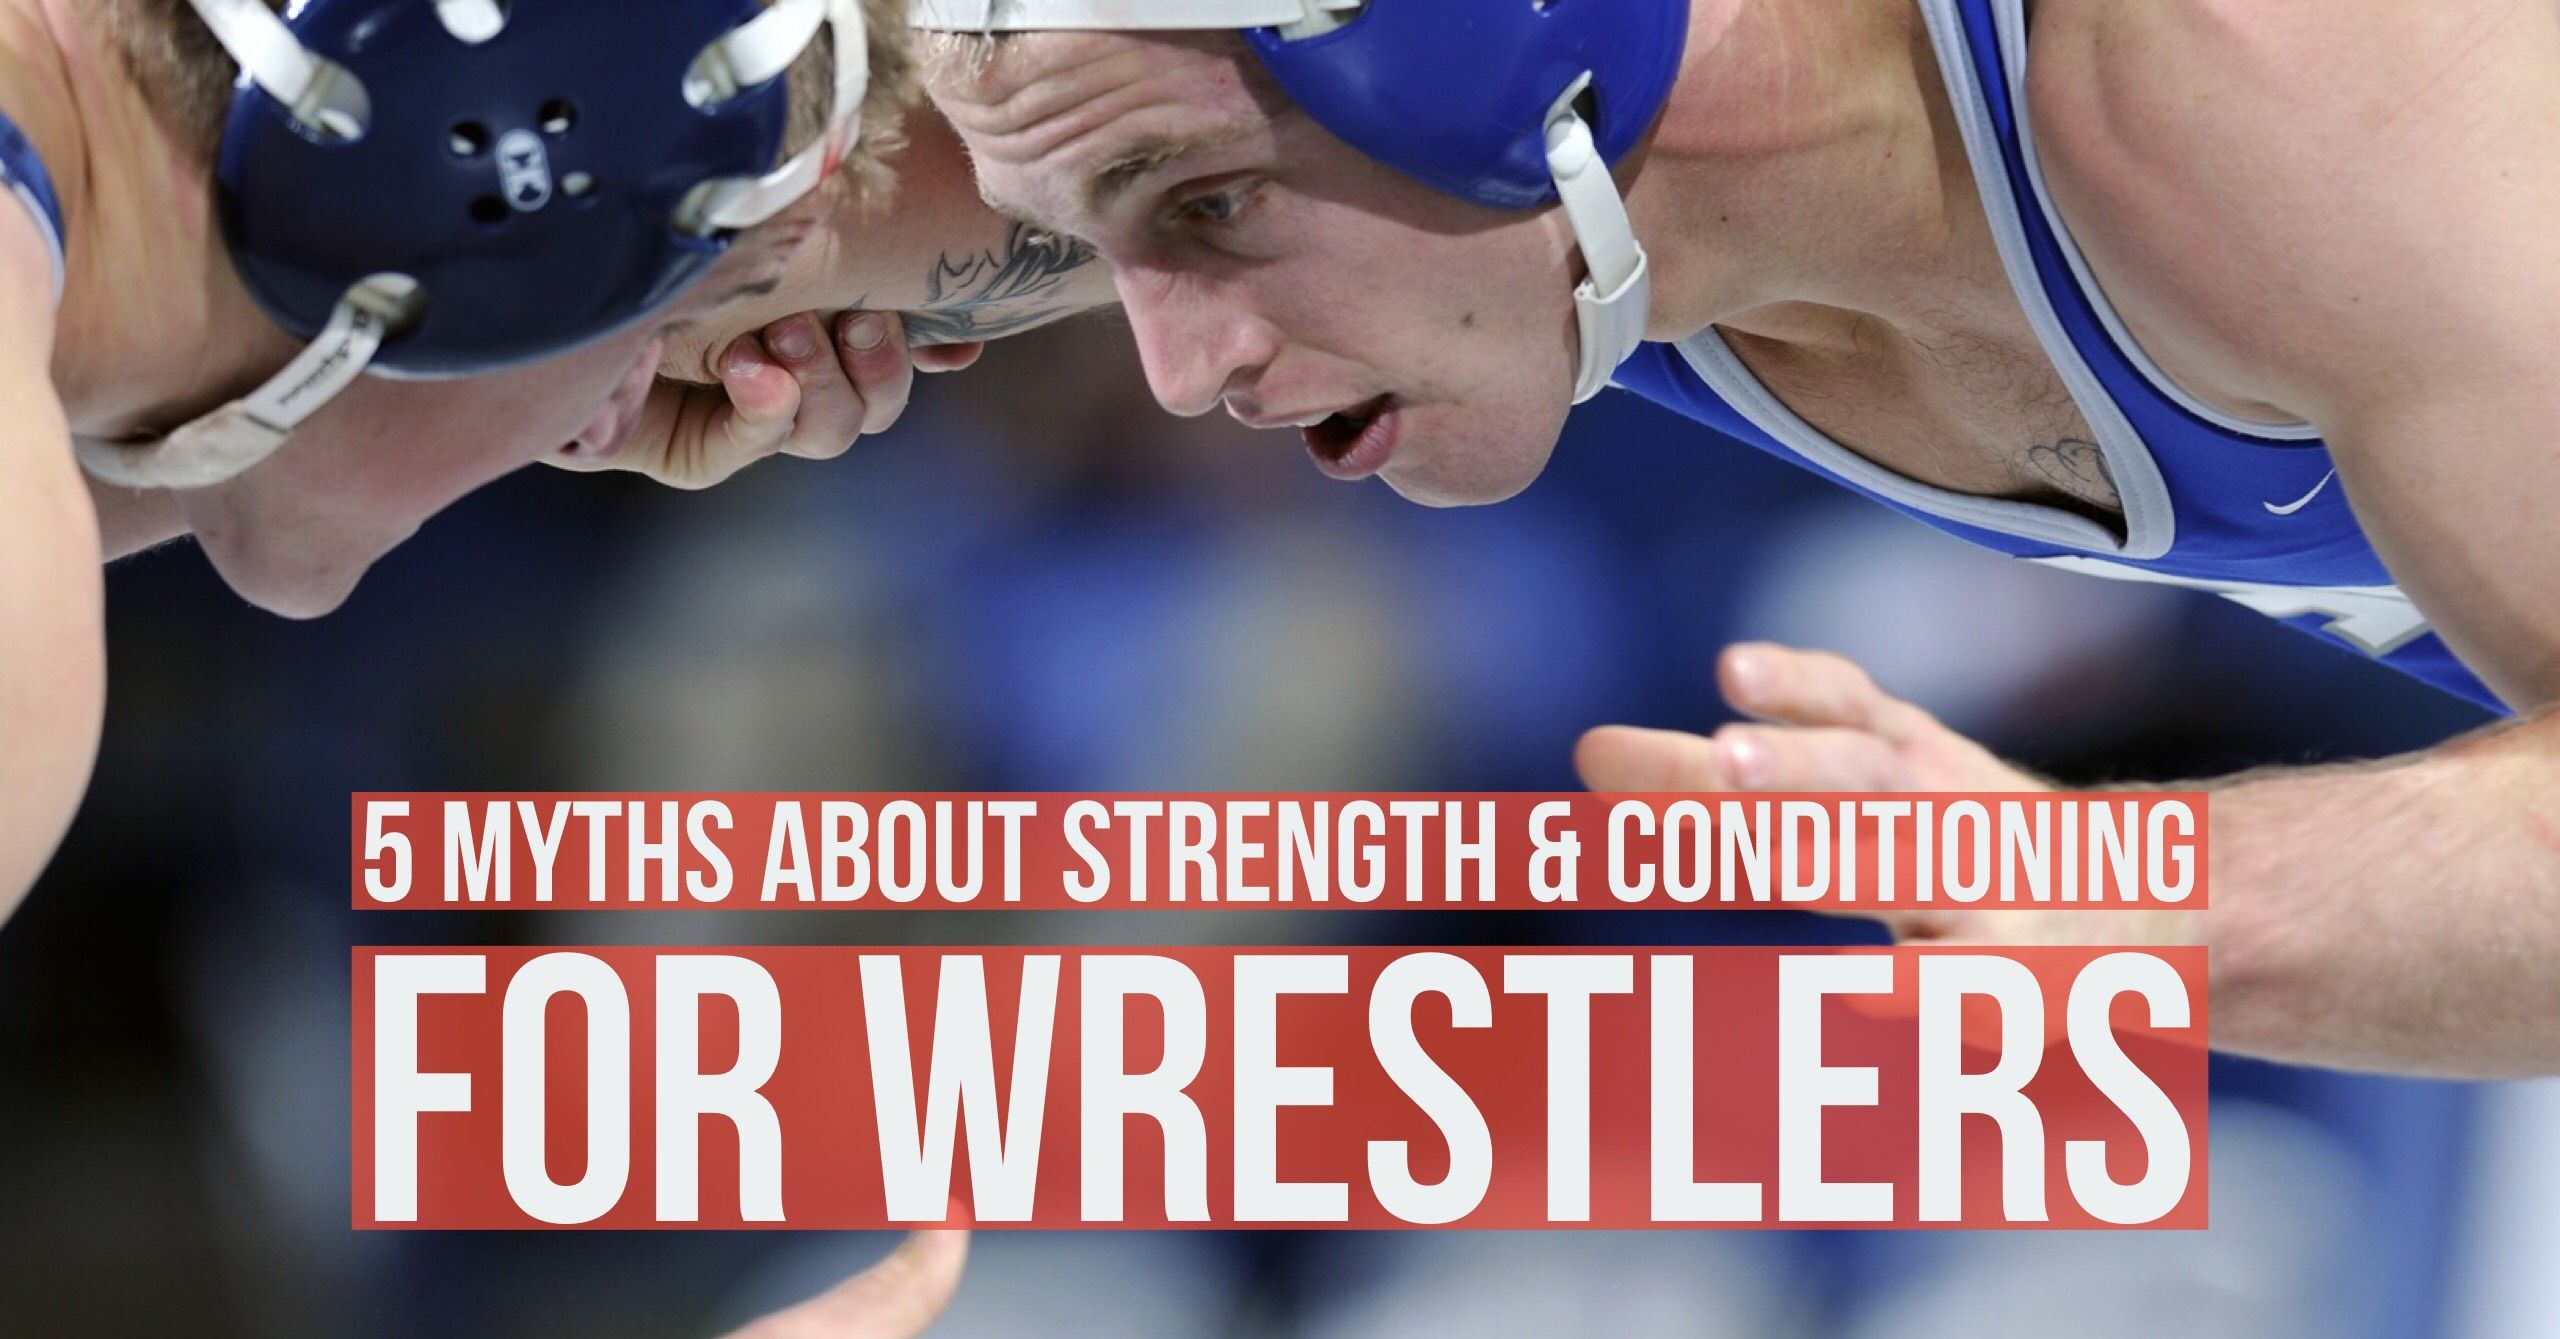 Top 5 MYTHS About Wrestling Workouts: Strength and